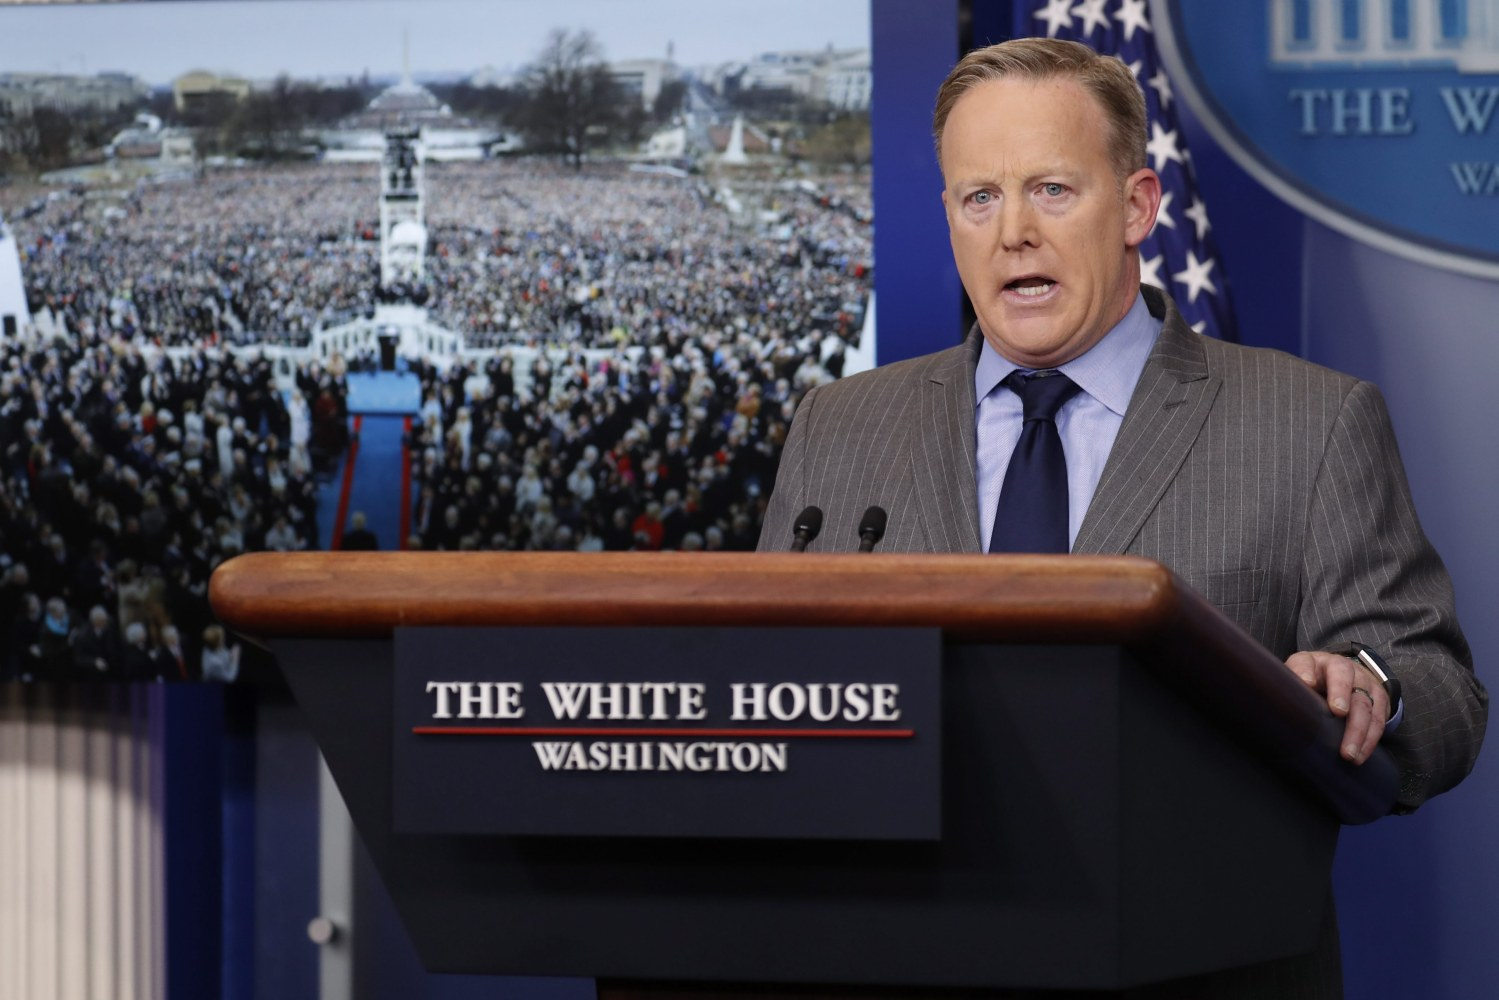 White House Spokesman gave 'alternative facts' on inauguration crowd